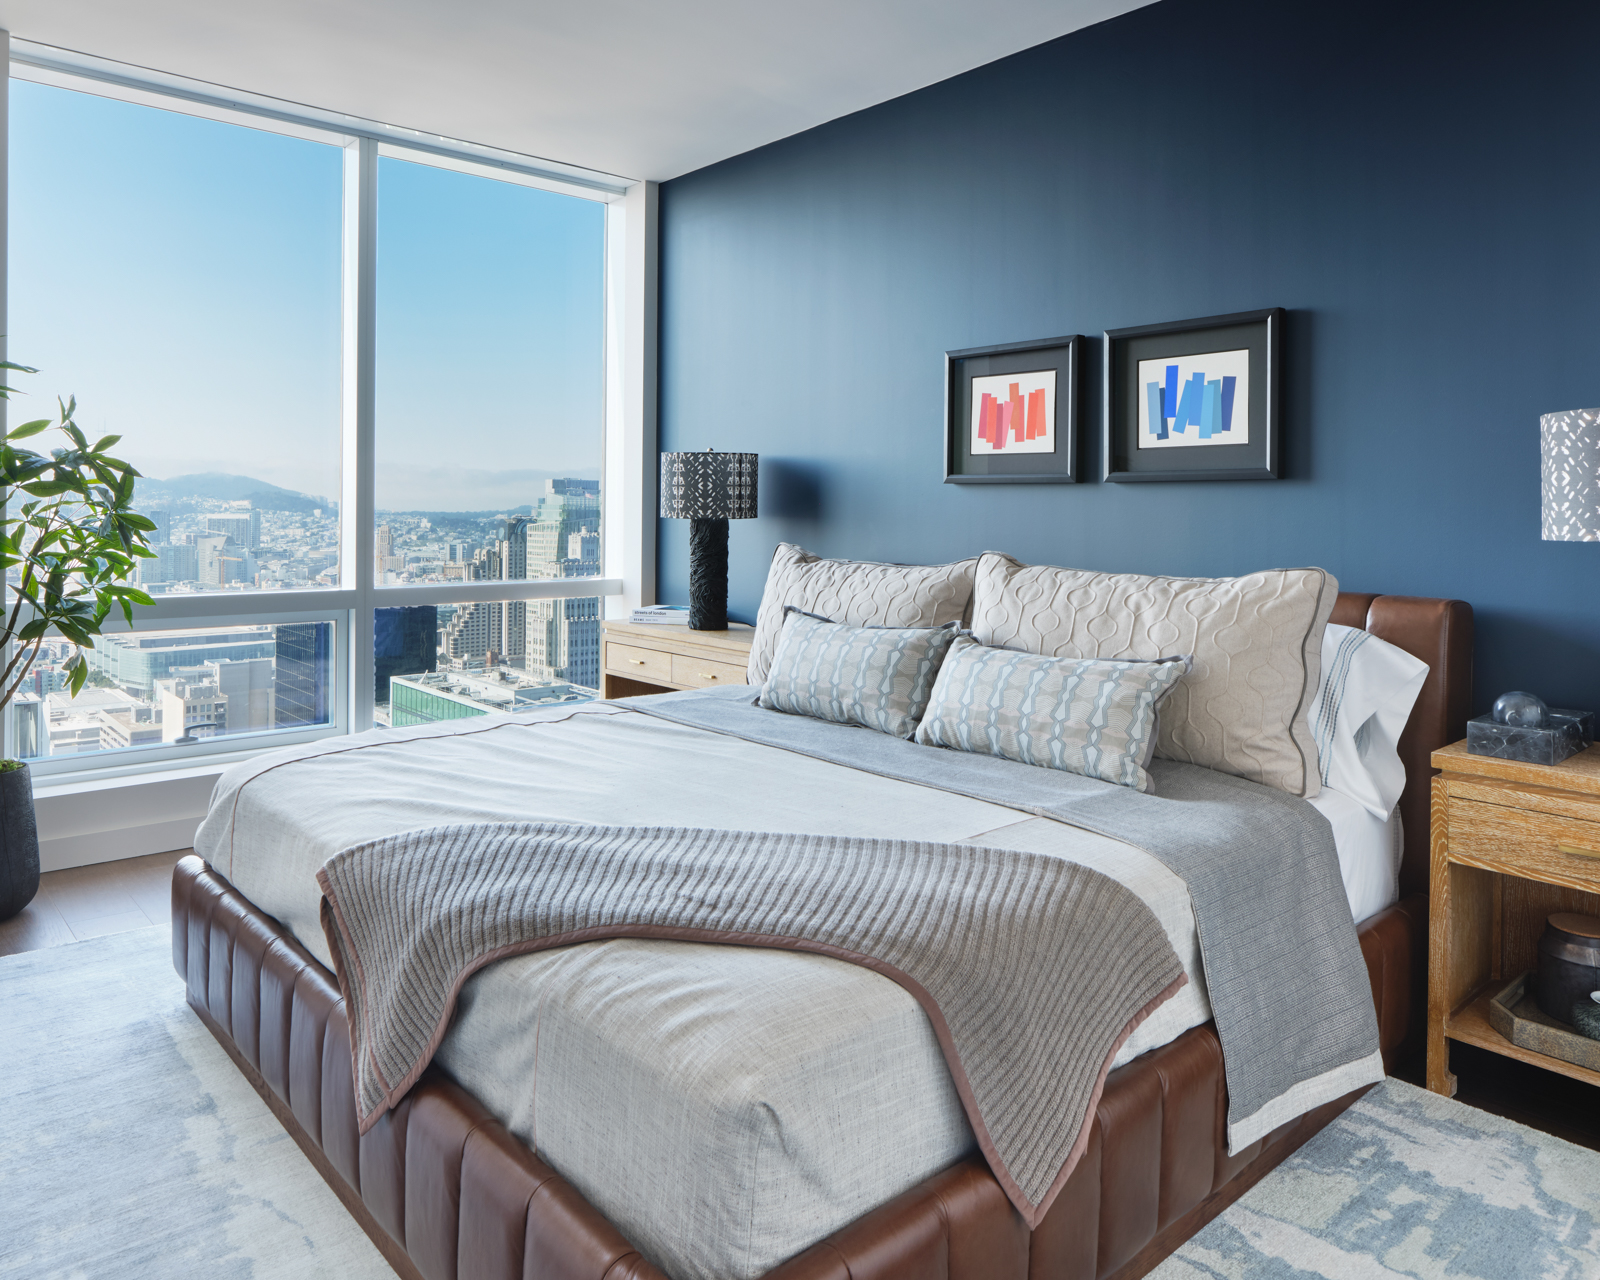 Spacious master bedrooms with expansive views